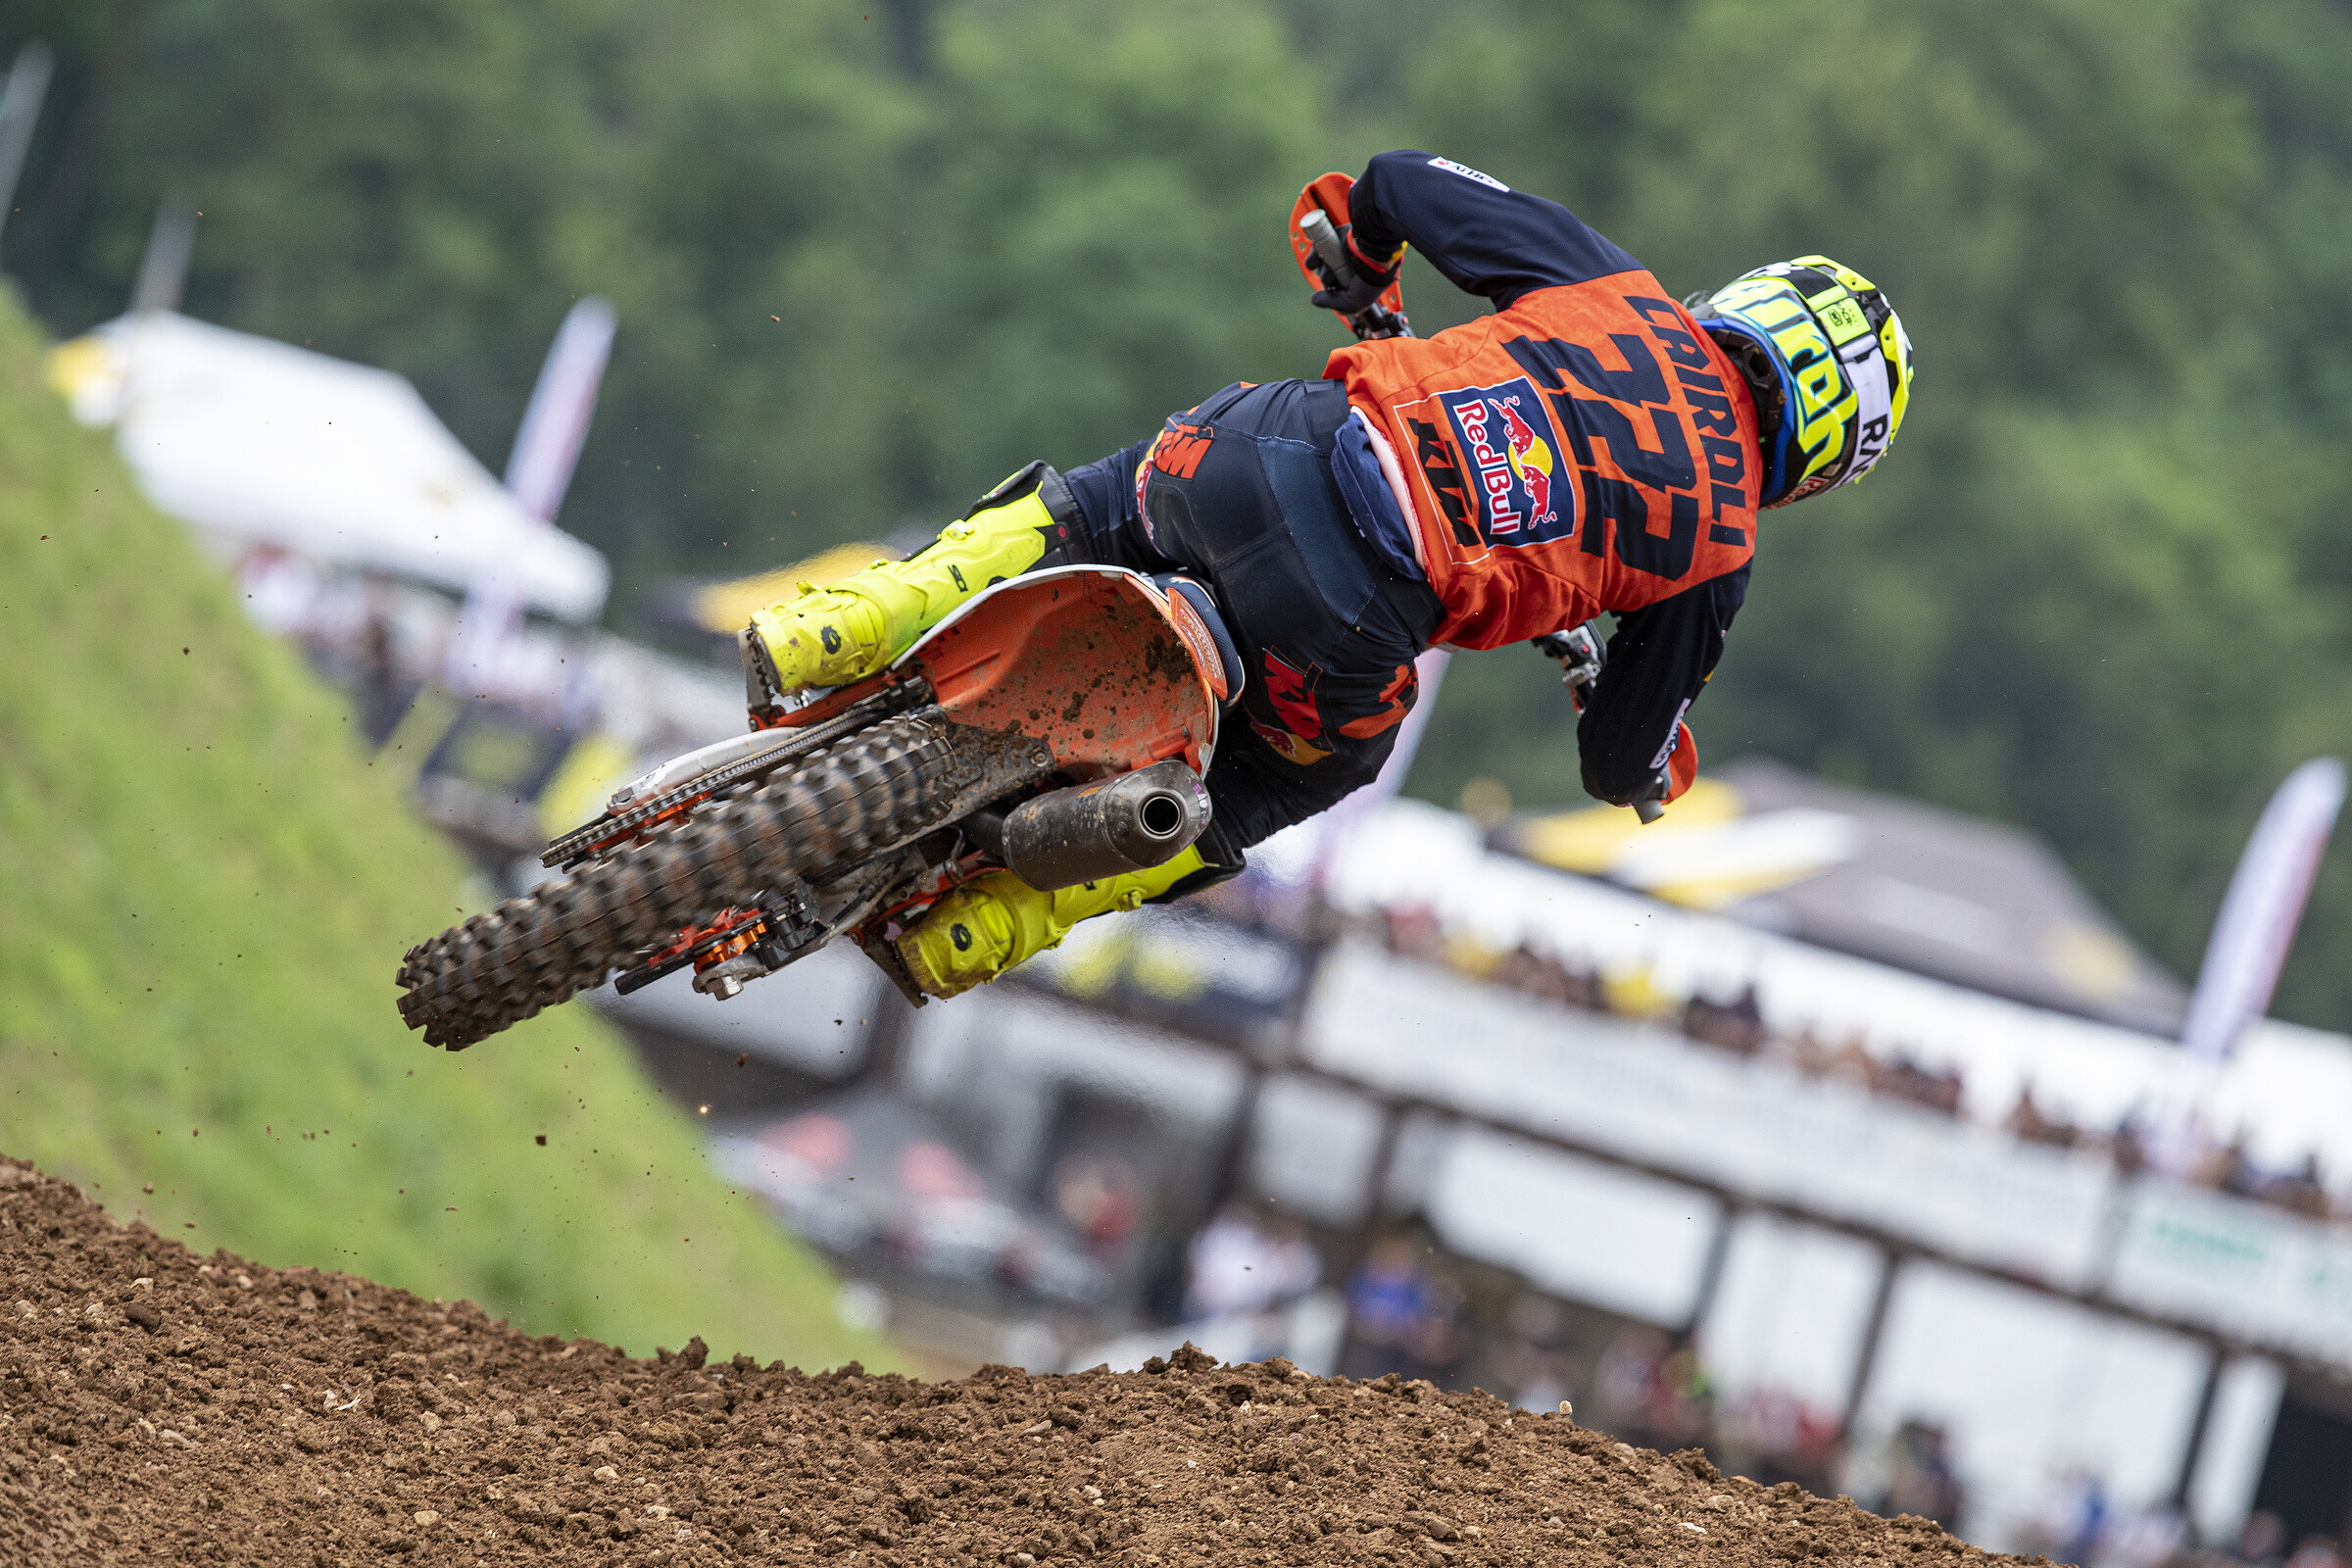 Cairoli ended up third overall at his home Grand Prix earlier this year.